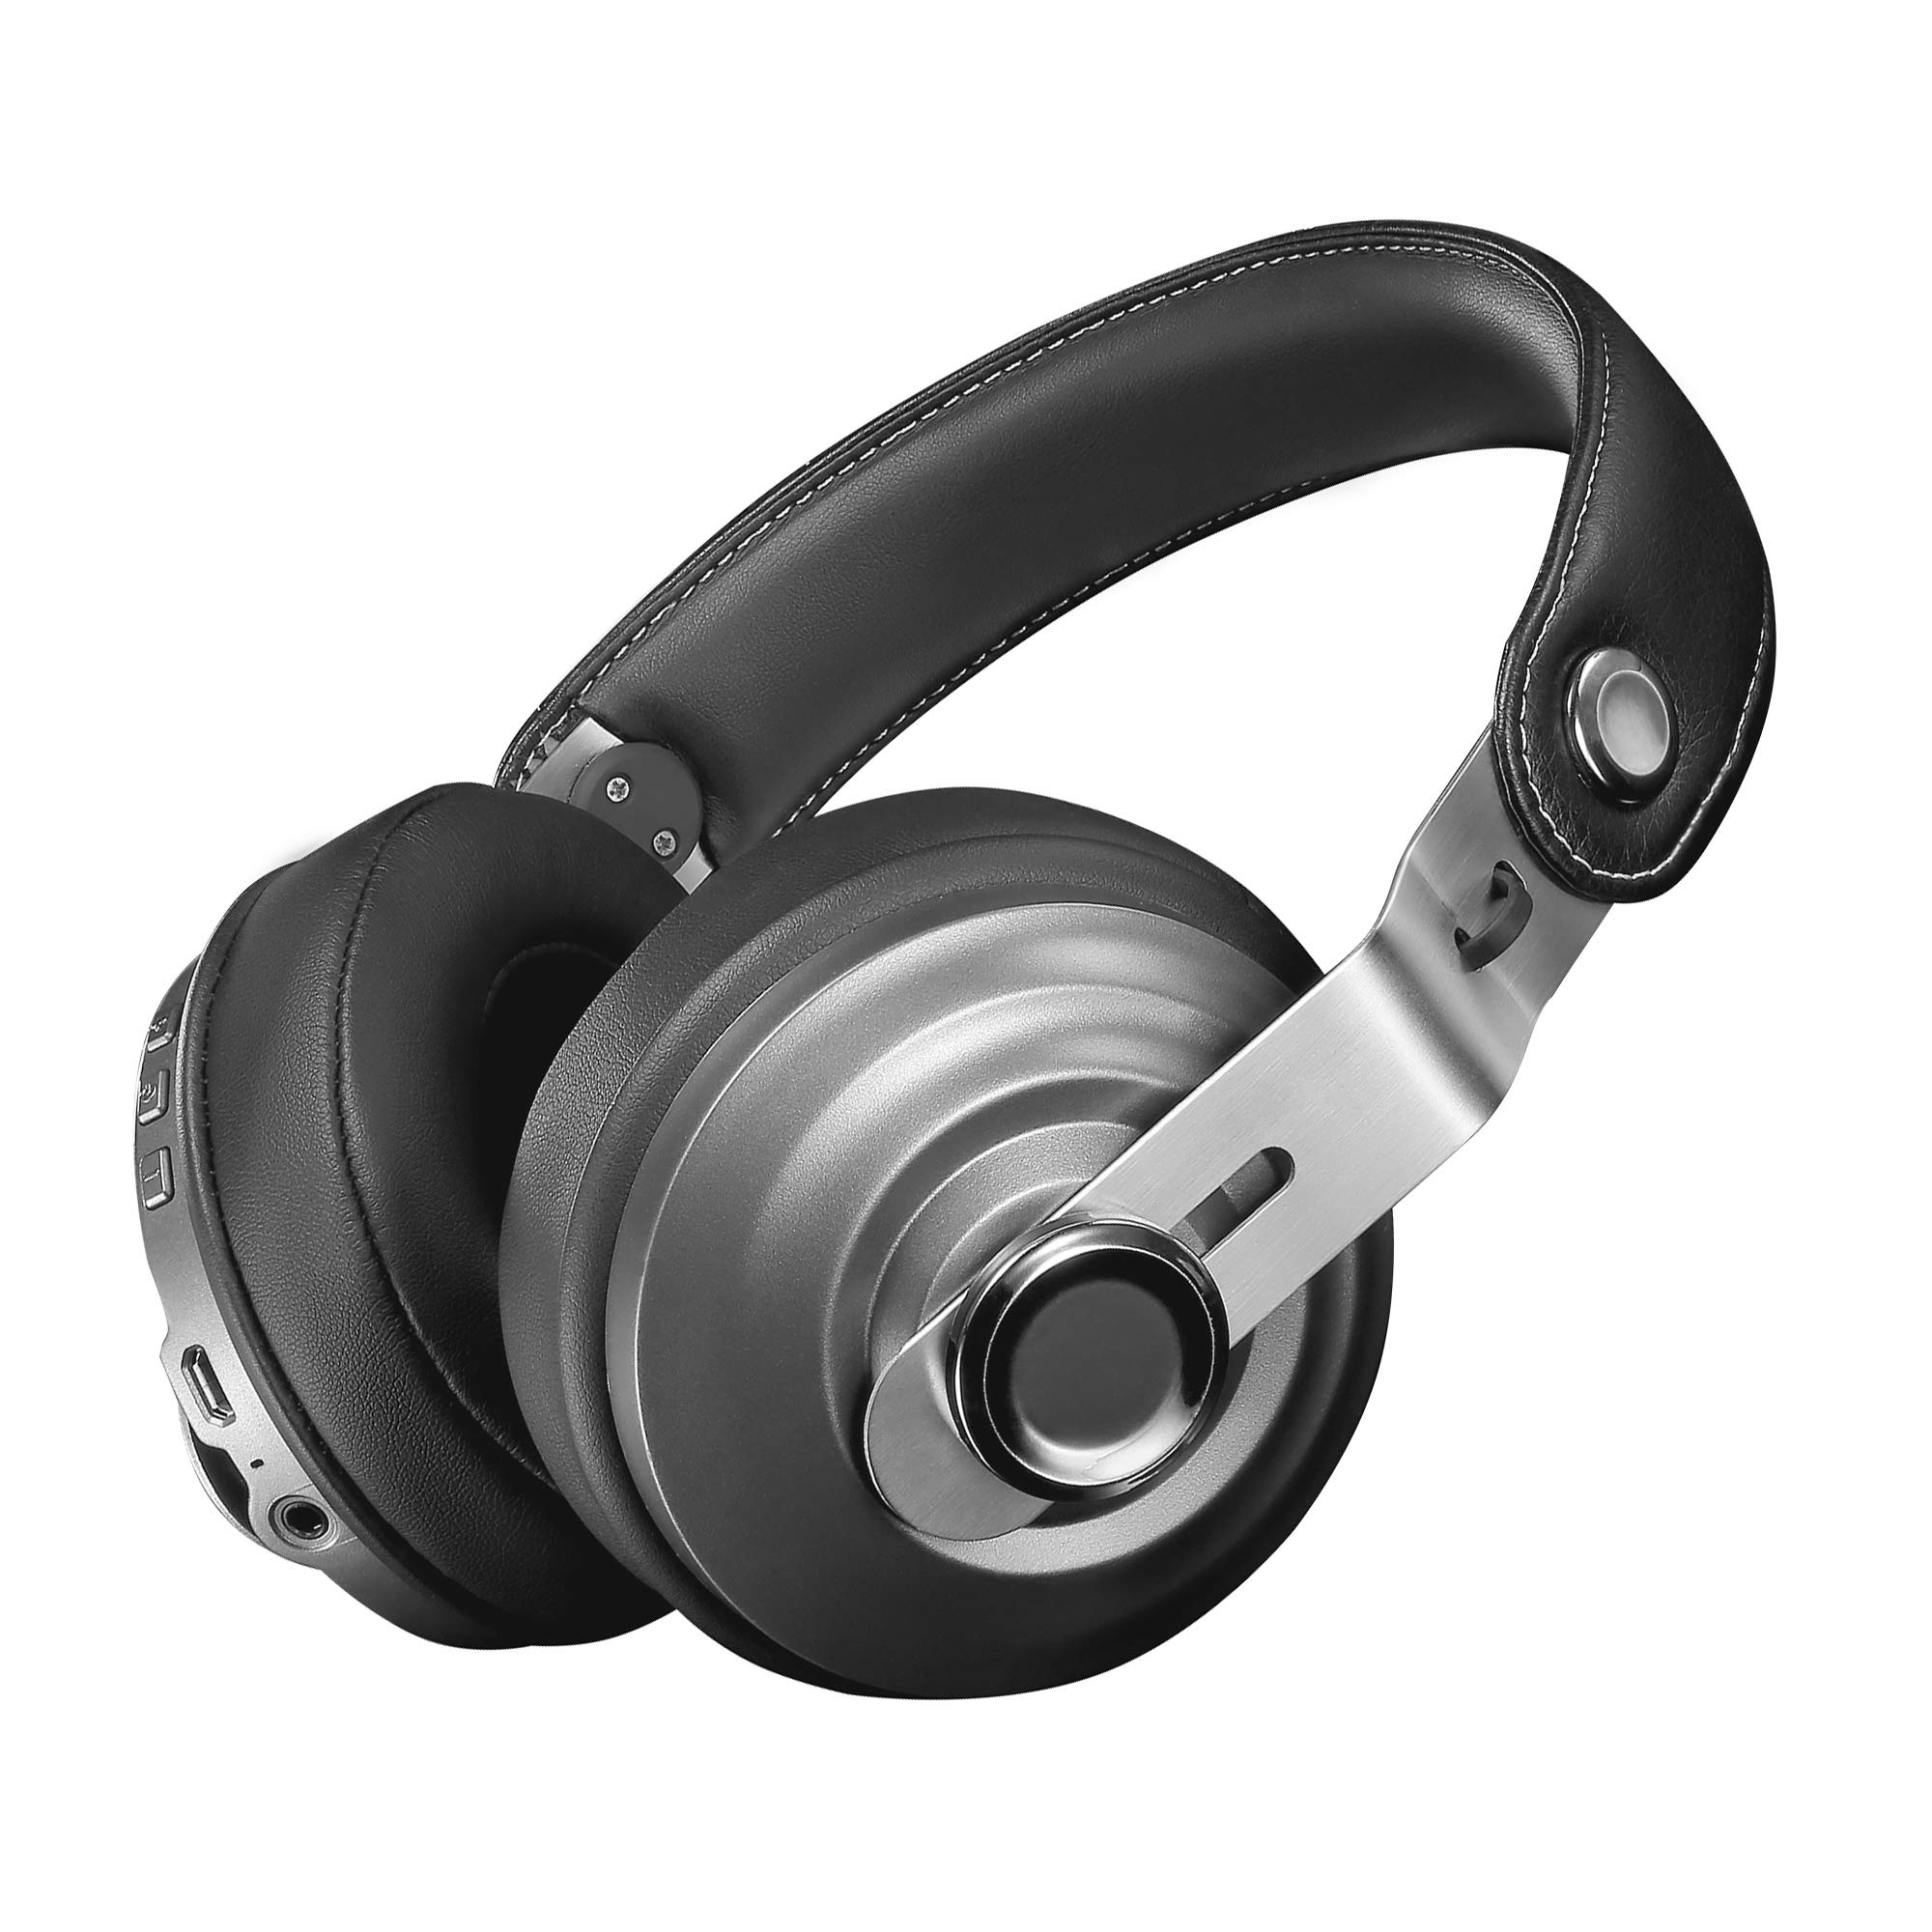 Betron HD800 Bluetooth Over Ear Headphones, Wireless, High Performance Bass Driven Stereo Sound, 50mm Drivers, with Microphone